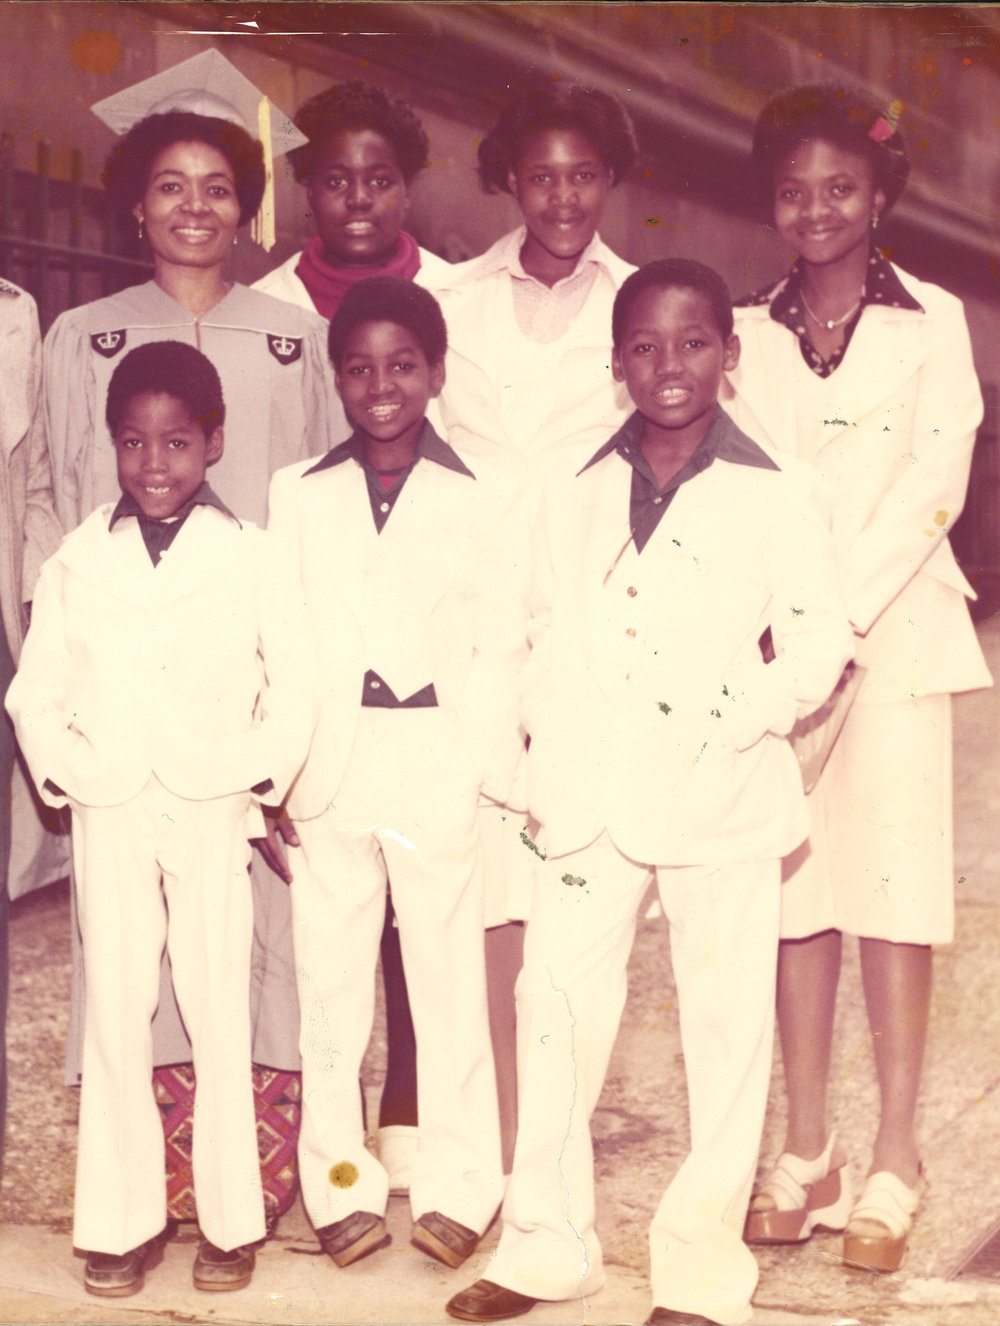 Dorcas Demasio, her five children and her niece (far right) after the matriarch overcame enormous odds to obtain a graduate degree from Columbia University in 1977. Queen Dorcas, also an alumna of New York University, ended up with three degrees.